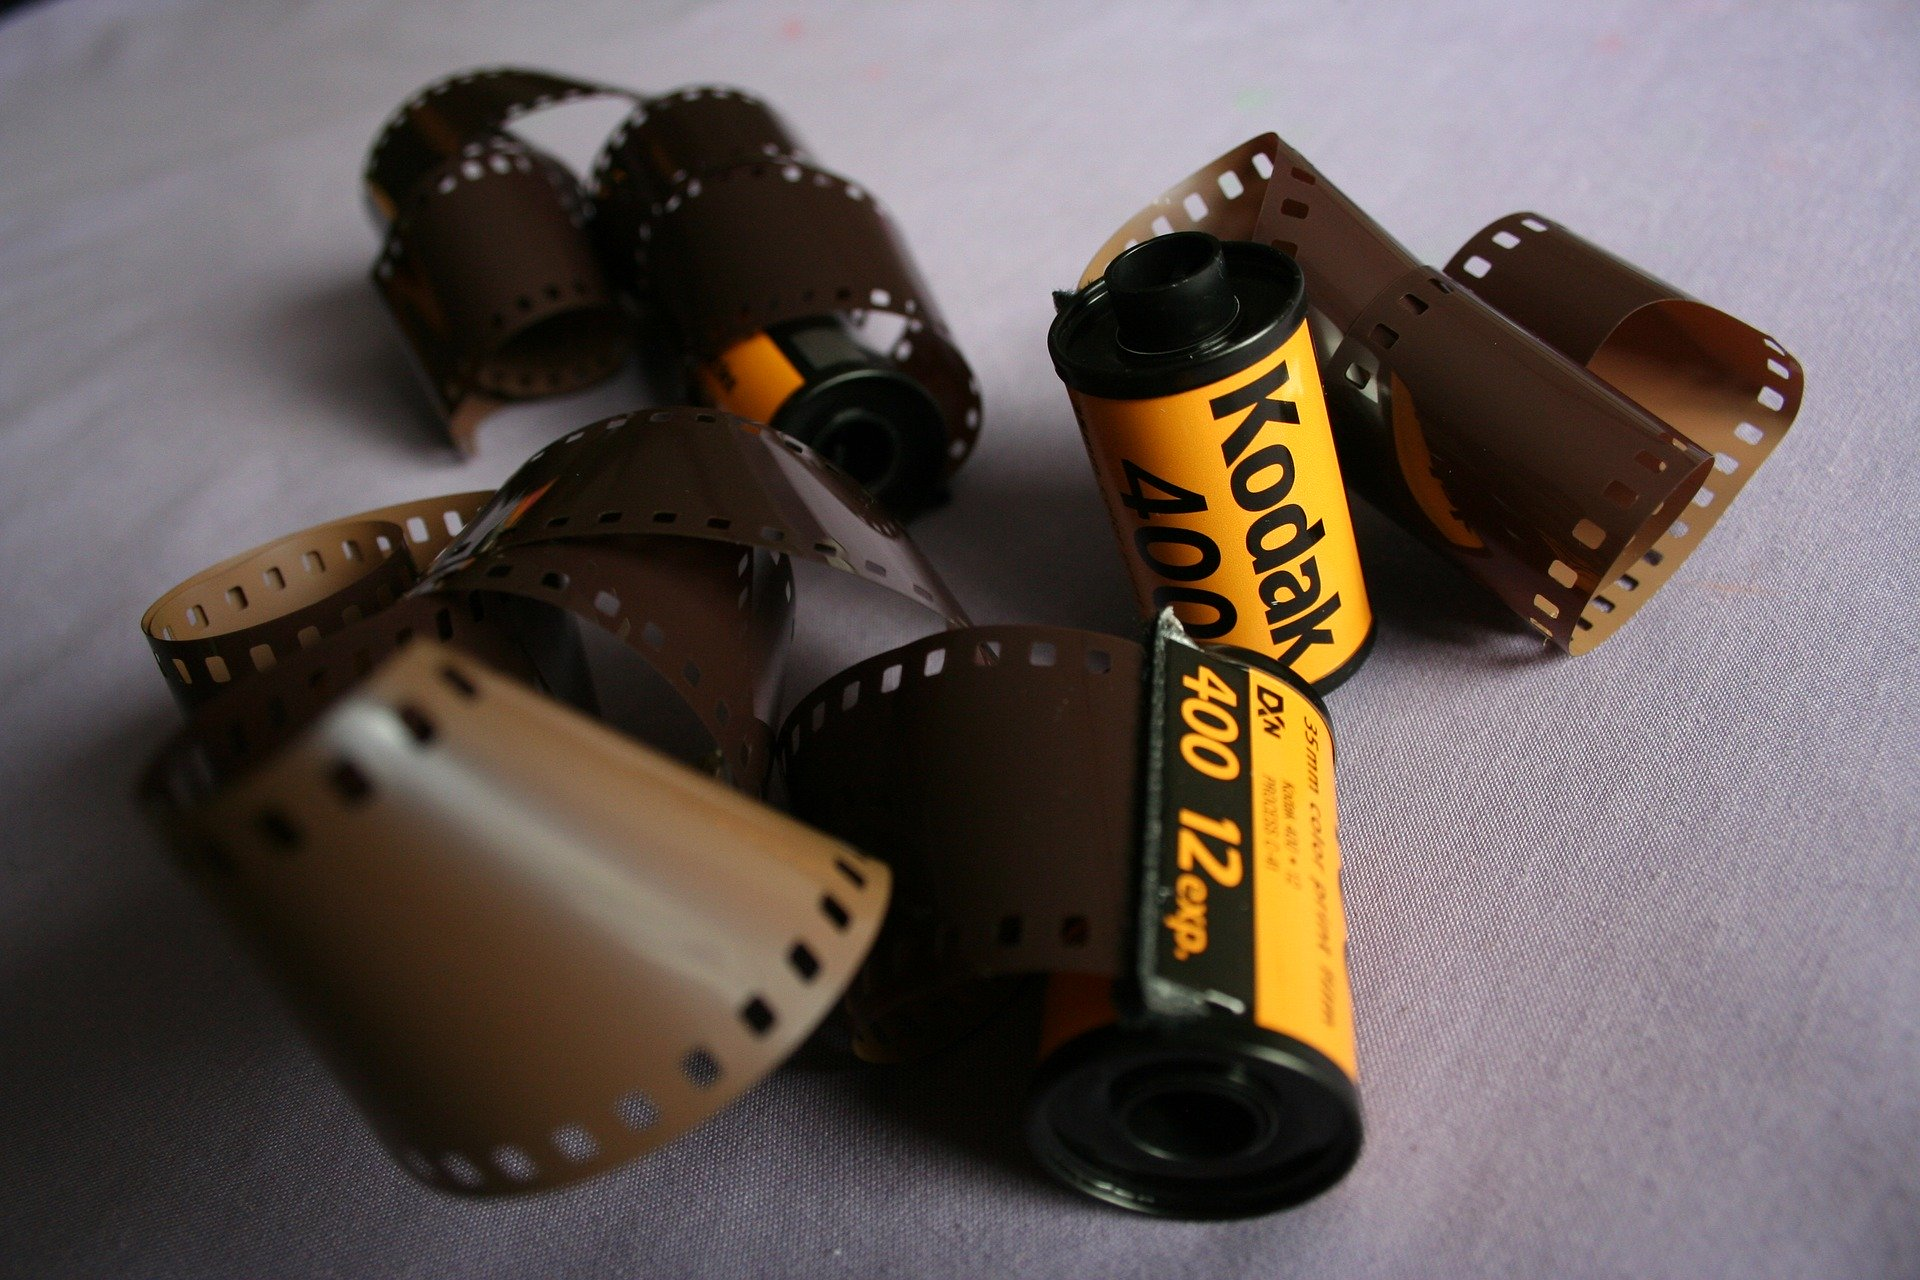 Eastman Kodak S Still Film Production More Than Doubled In The Last Four Years Kosmo Foto